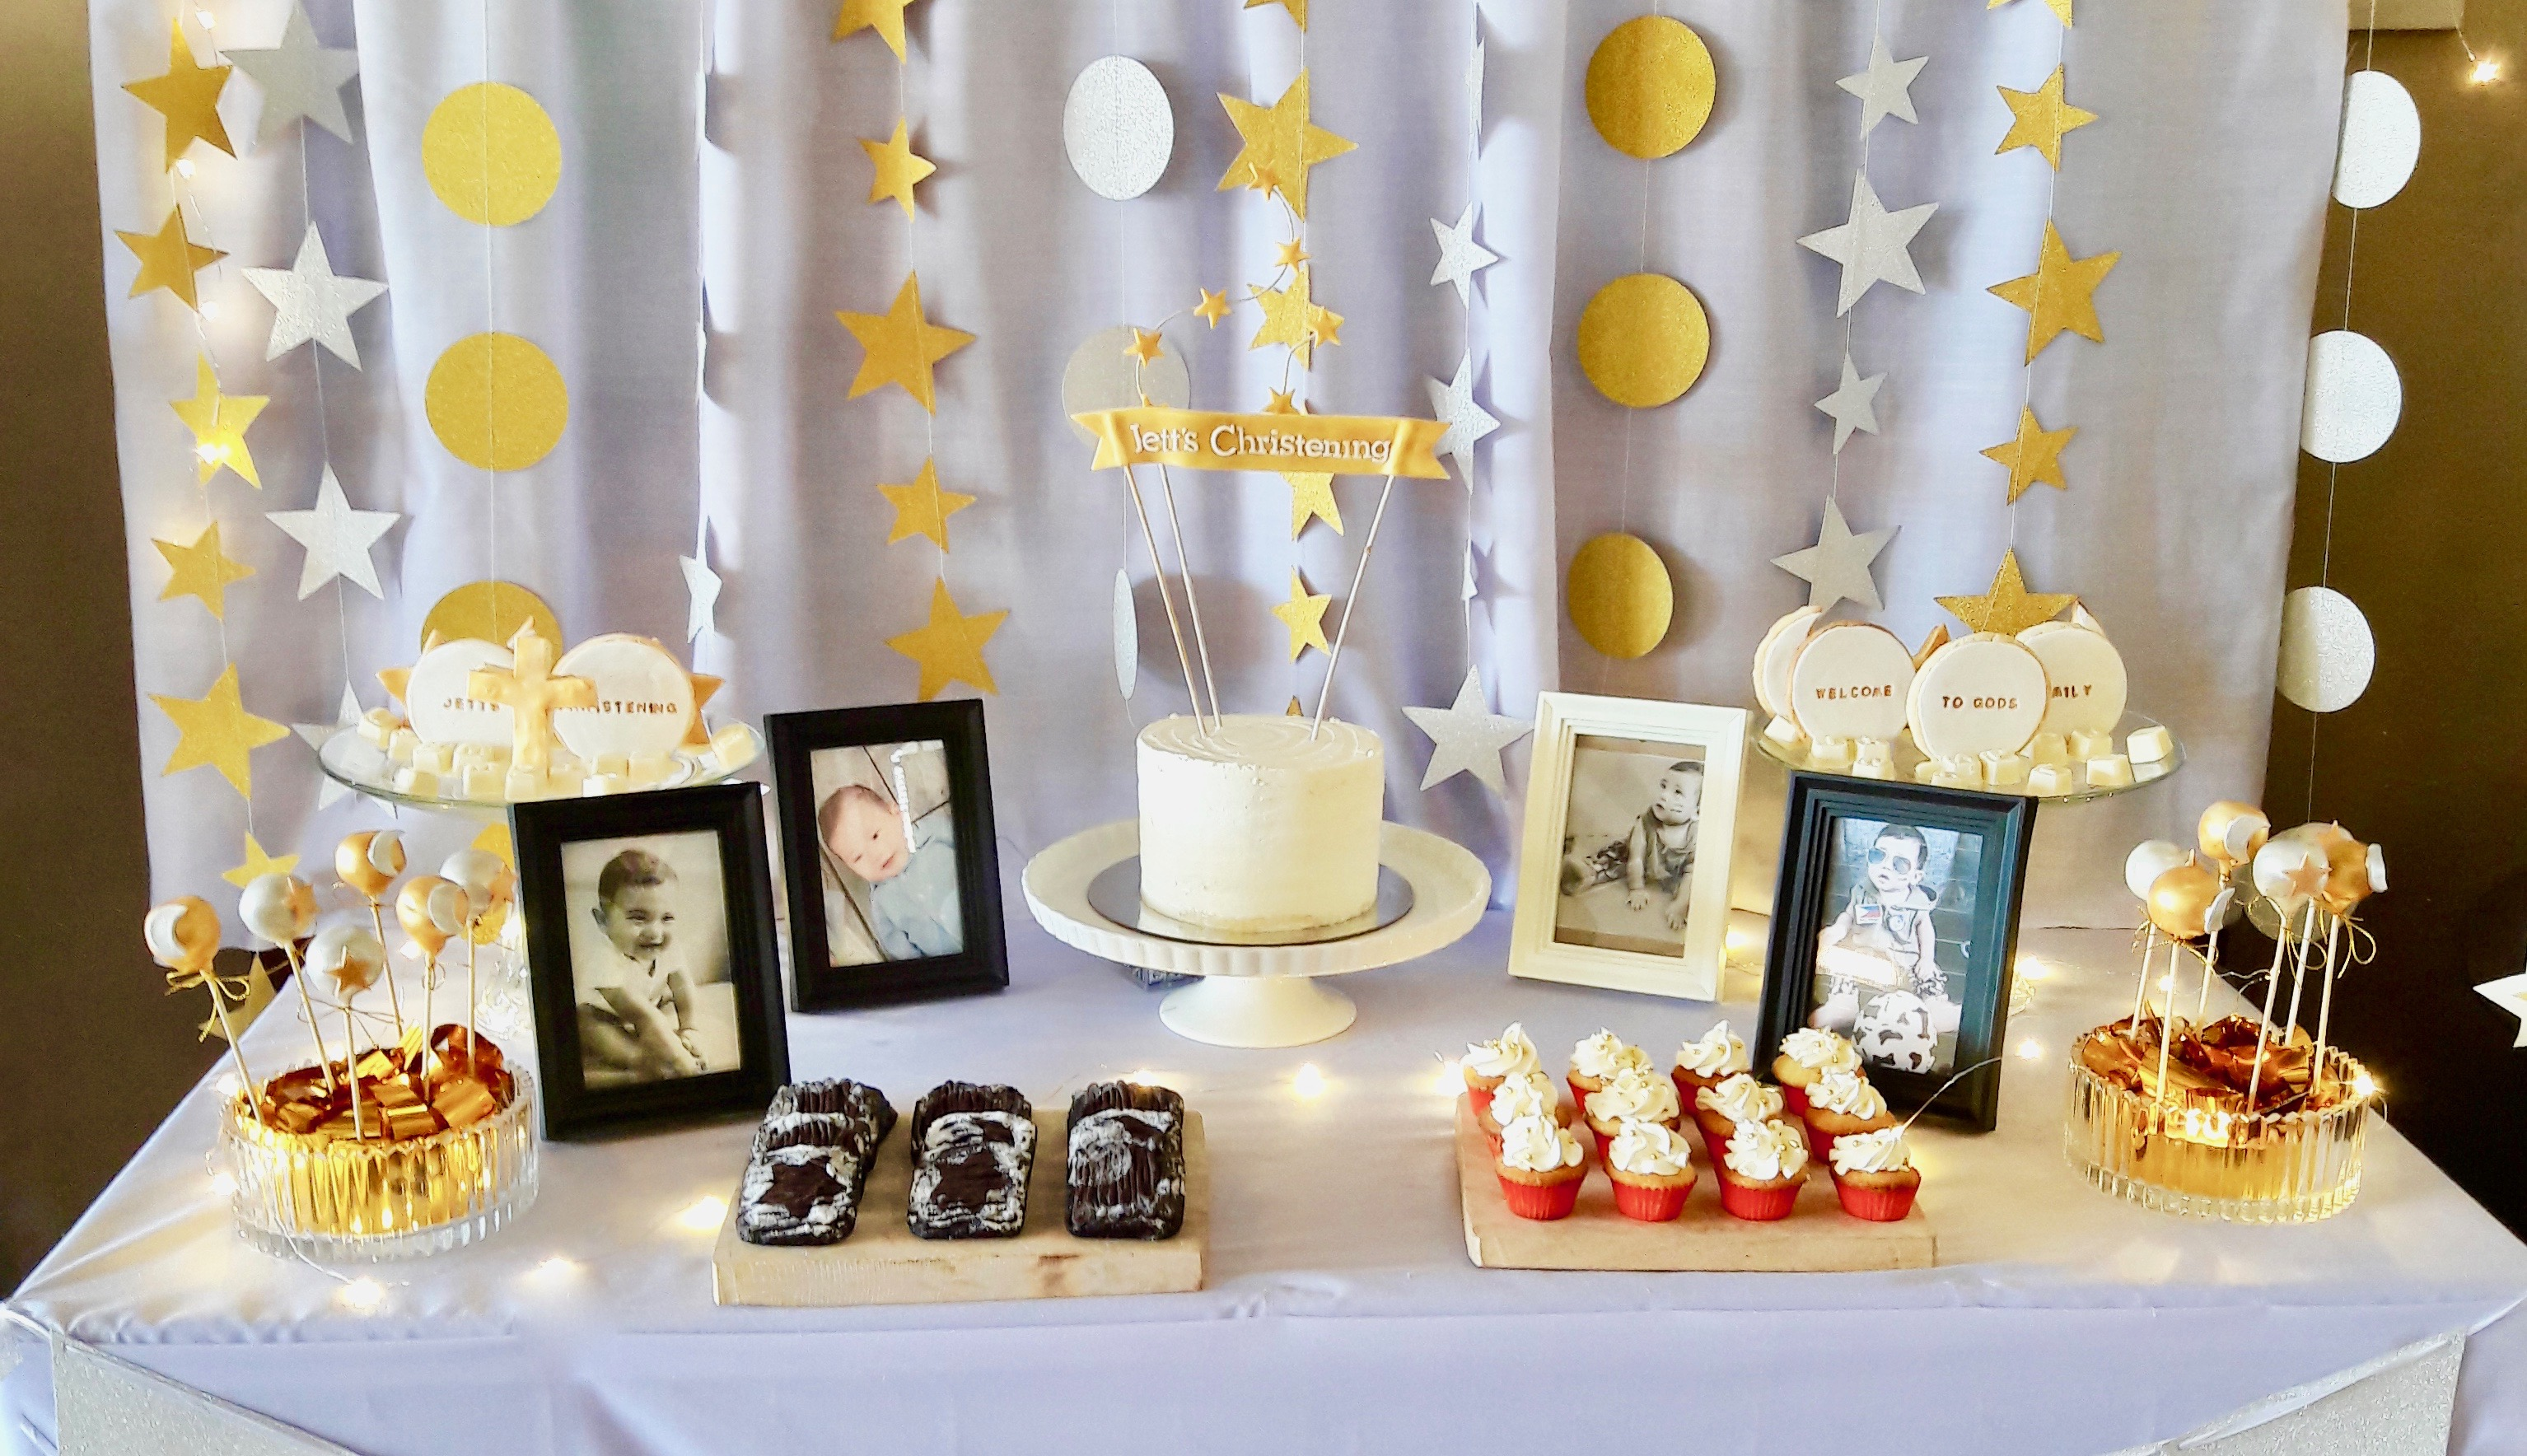 Check Out Our Dessert Table Packages And Contact Us Today So We Can Help  You Plan Your Party Needs.